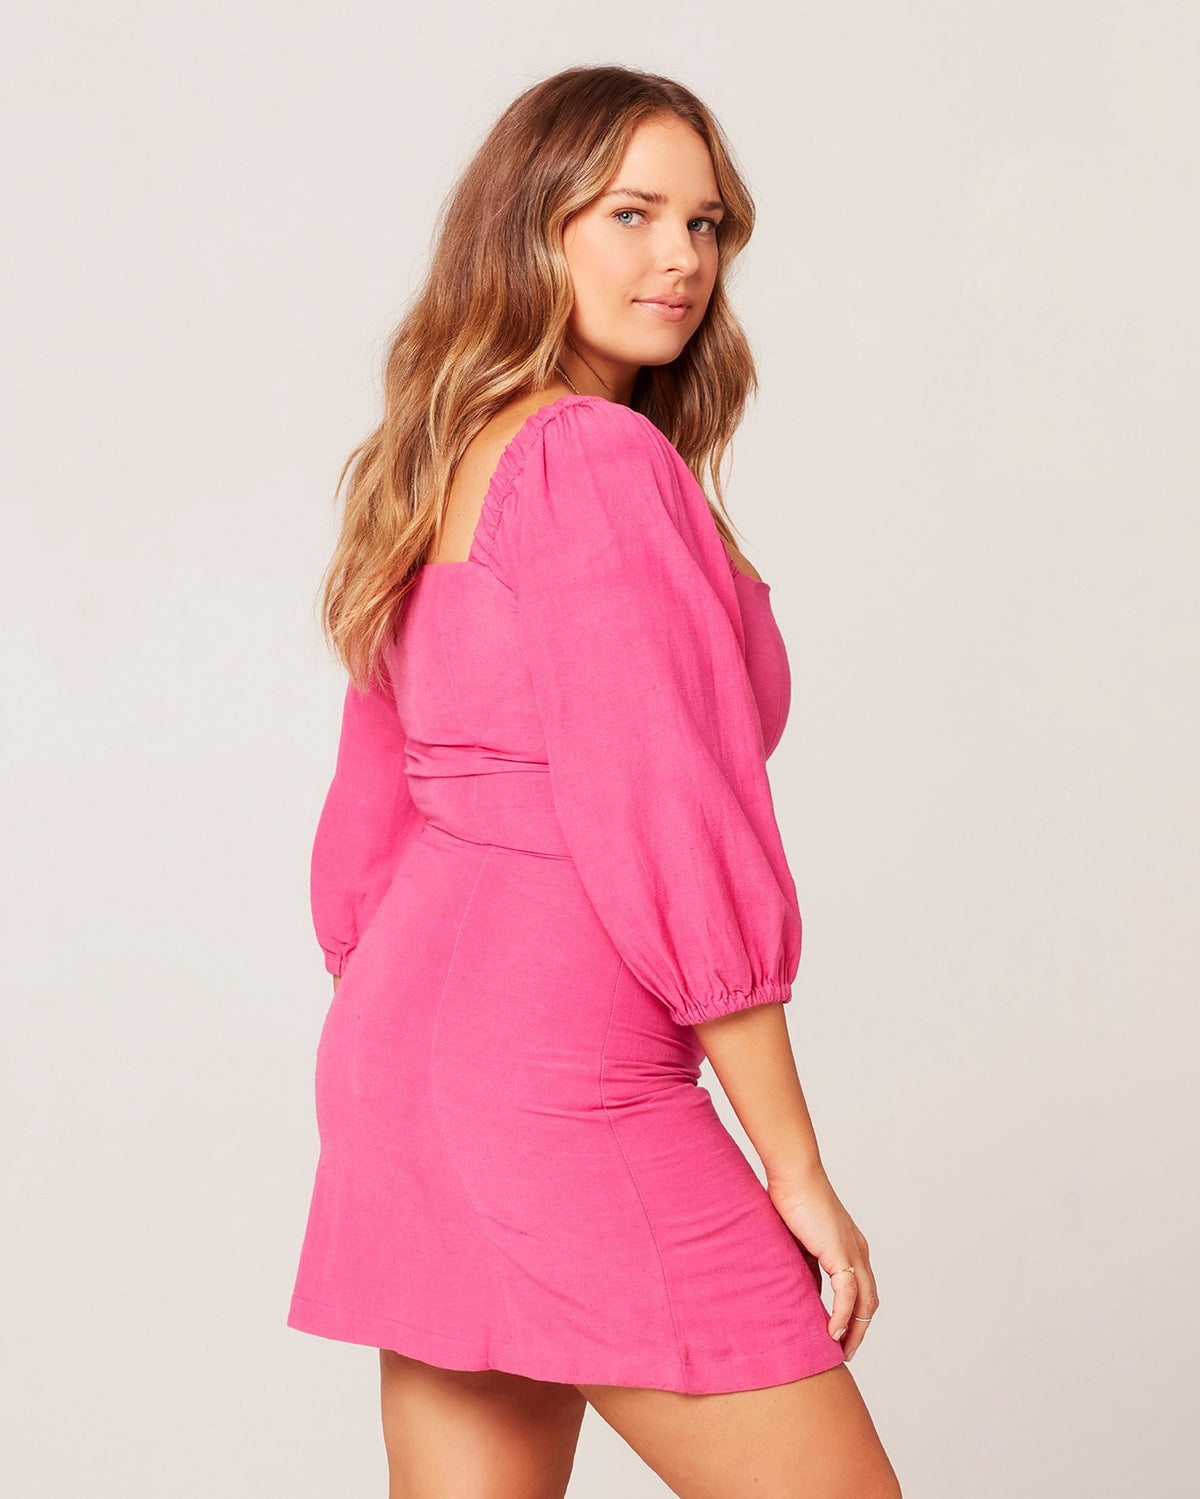 Bright Fuchsia | Model: Ali (size: XL)